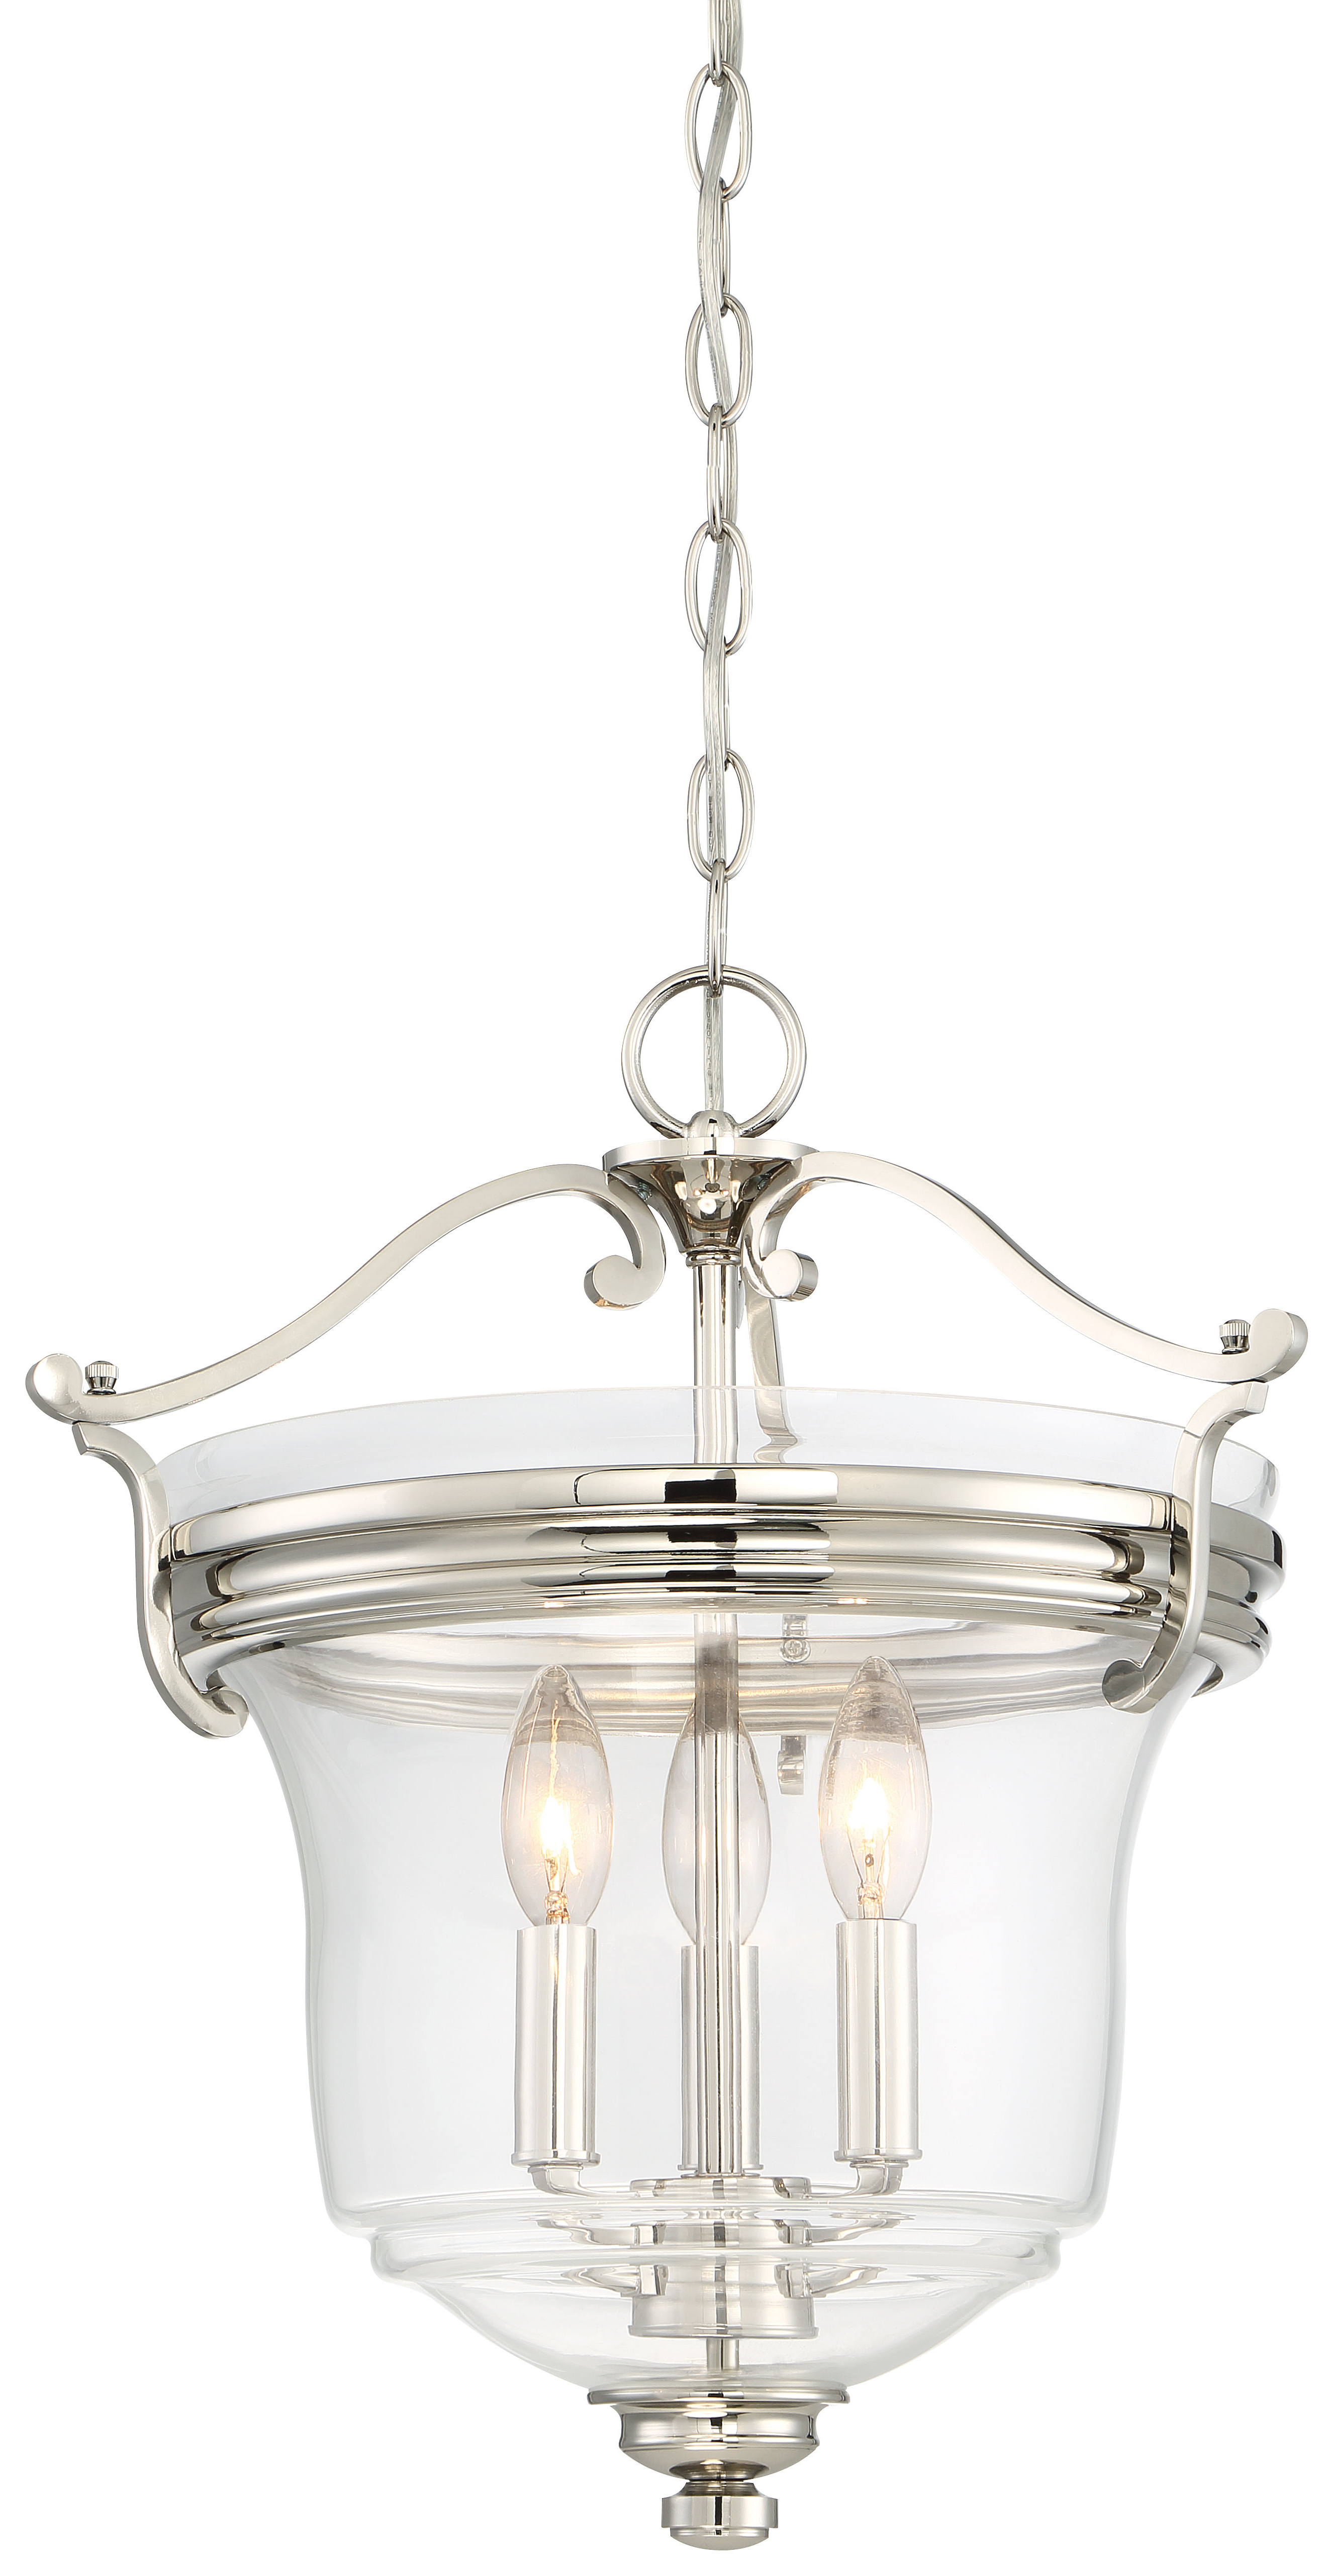 Well Liked 3 Light Single Urn Pendants Within Ameche 3 Light Single Urn Pendant (View 19 of 20)